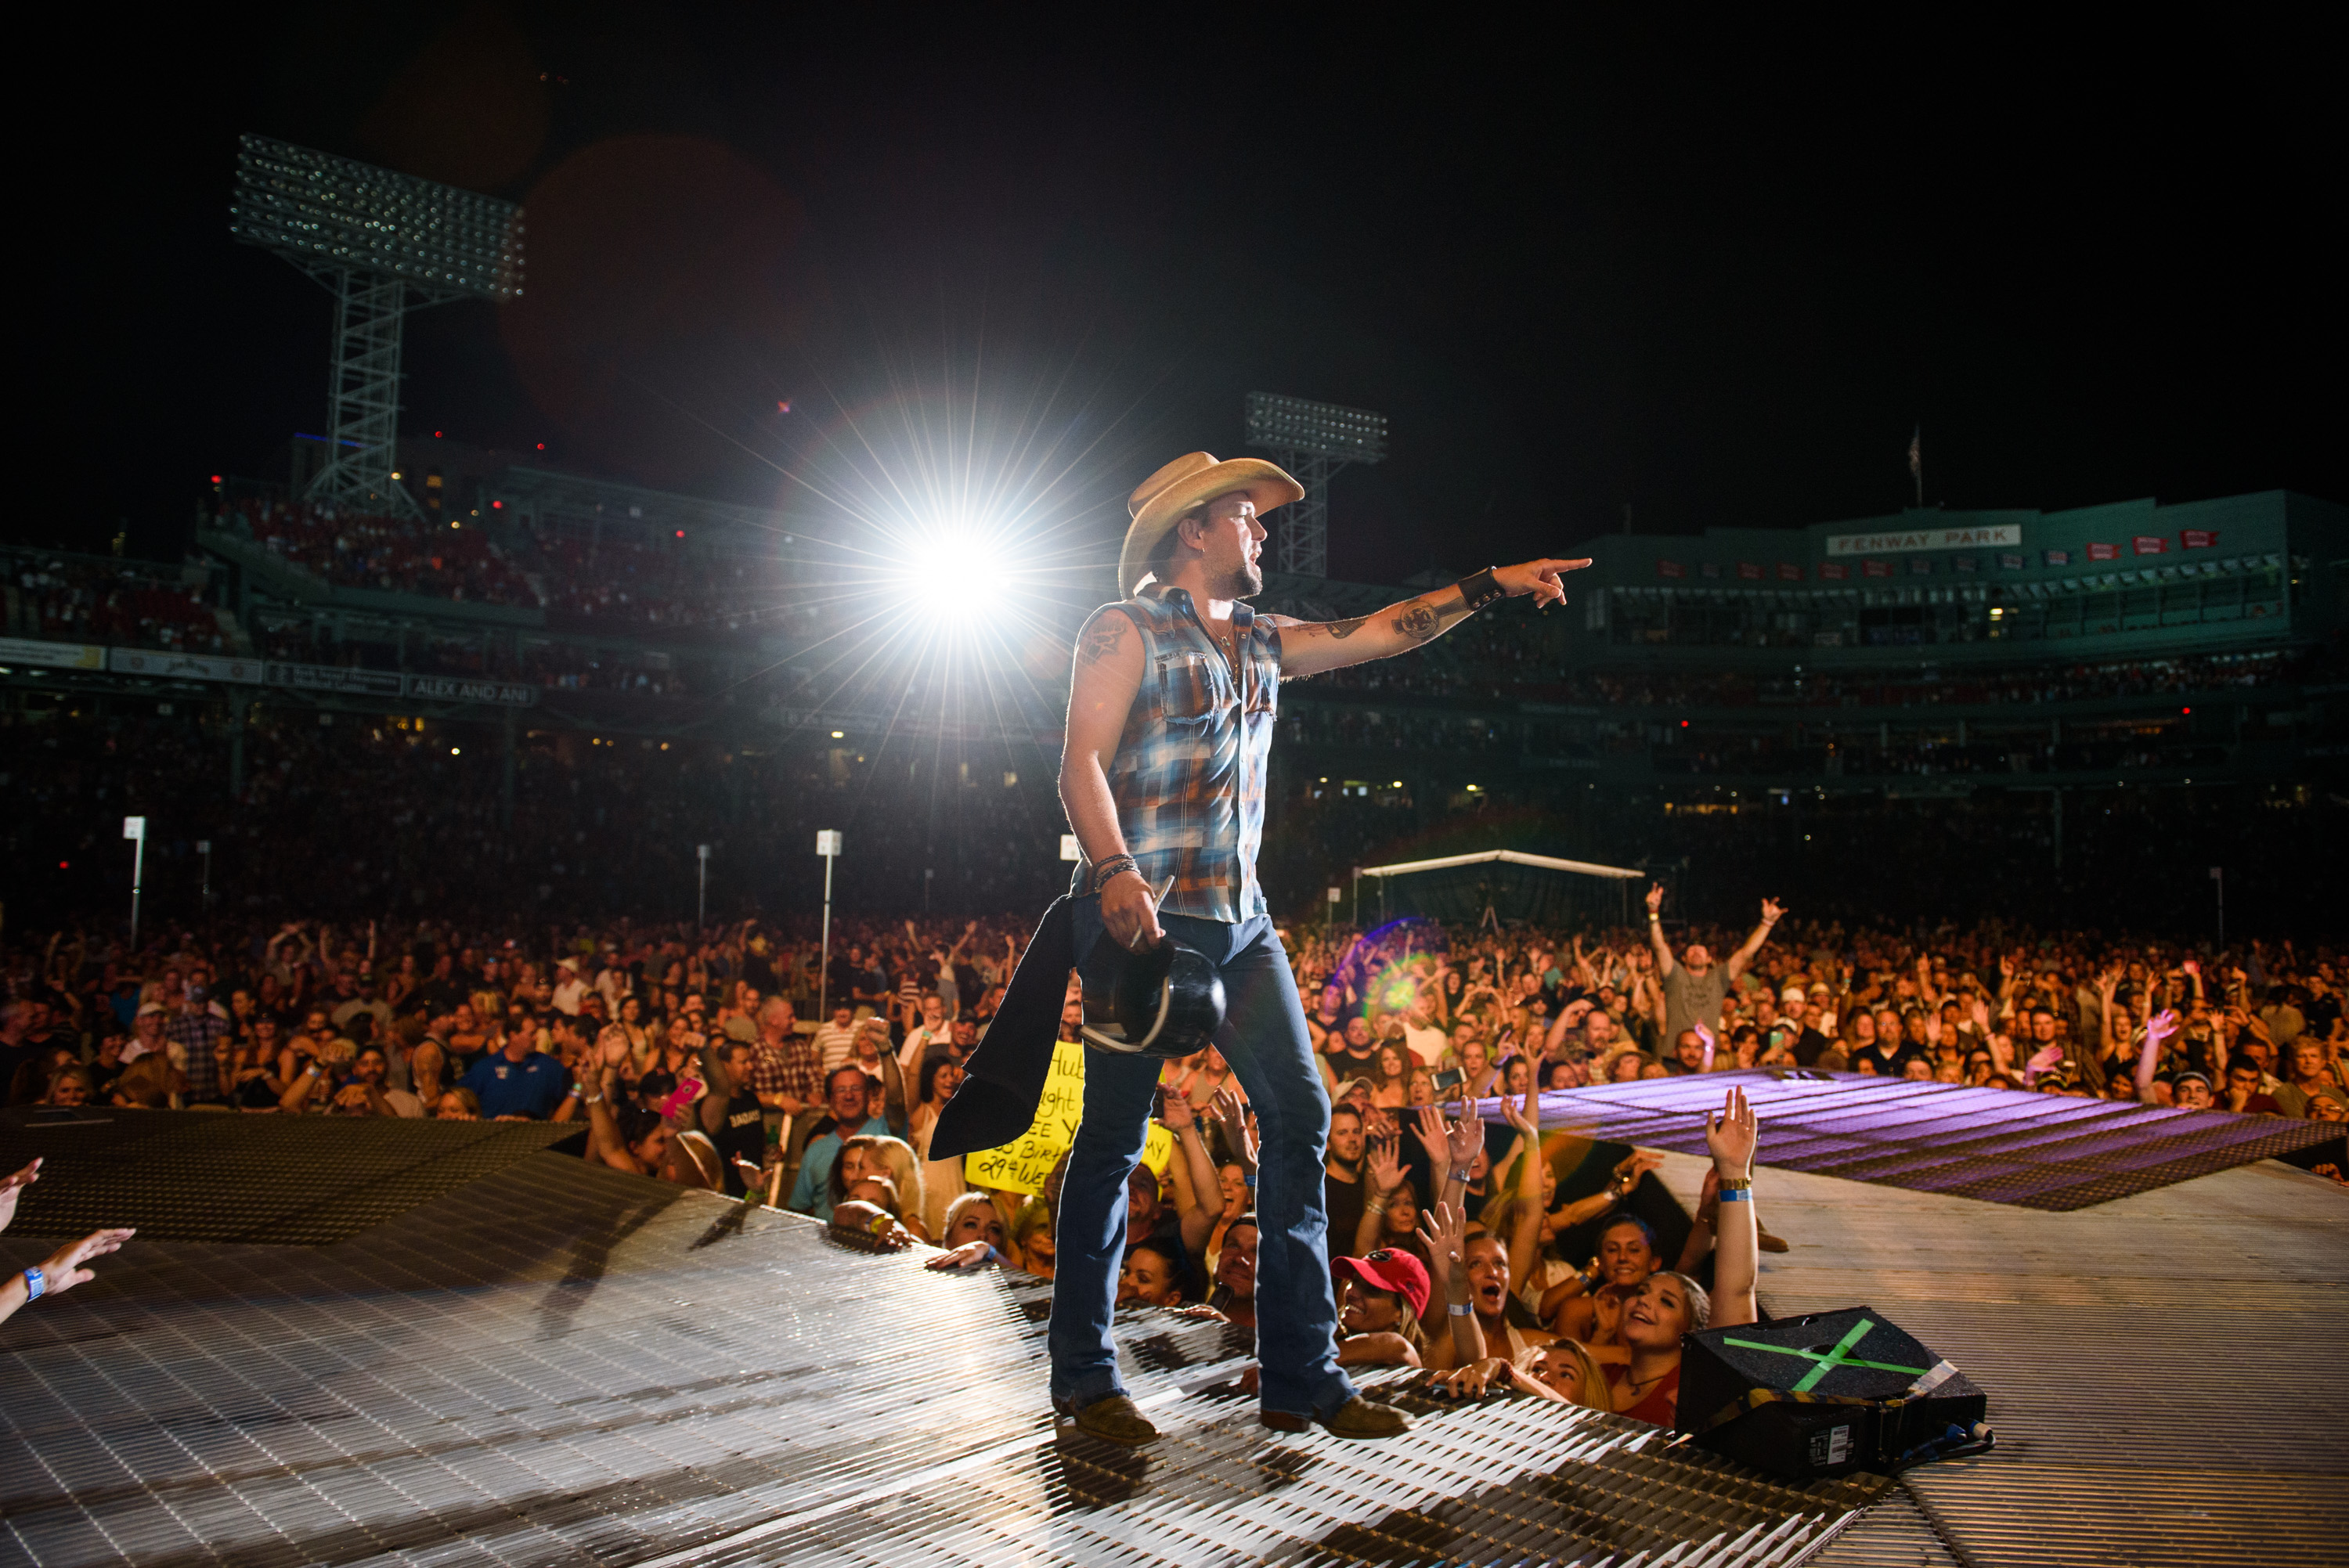 JASON ALDEAN HOSTS OVER 60K FANS AT FENWAY PARK